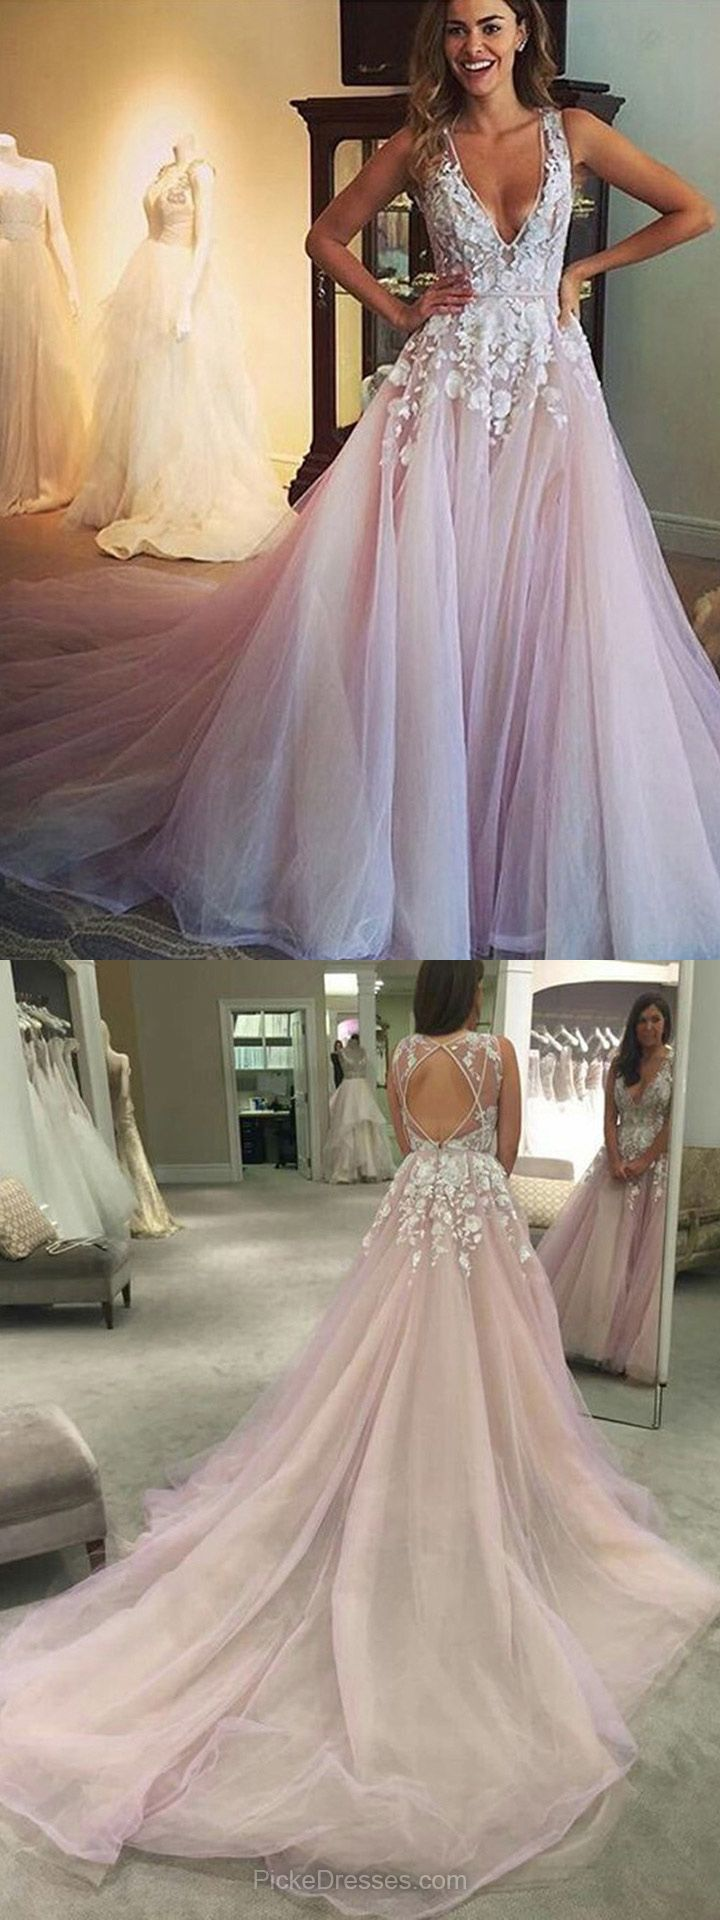 Amazing Princess Prom Dresses V-neck, Pink Party Dresses Long, Tulle Appliques Lace Formal Evening Gowns Open Back